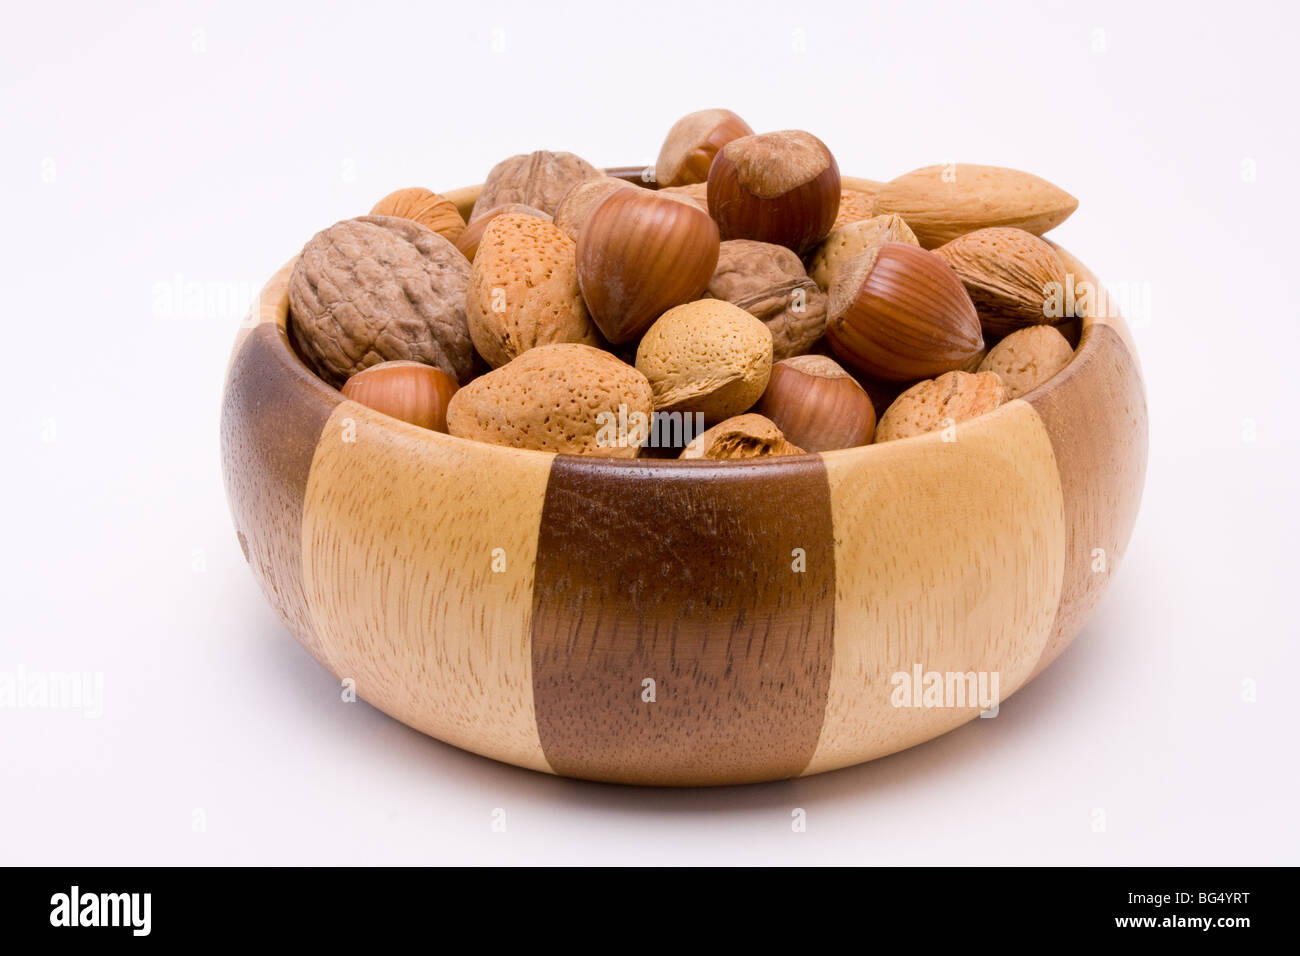 wooden bowl filled with mixed nuts in their shells, hazelnuts, walnuts and almonds. - Stock Image